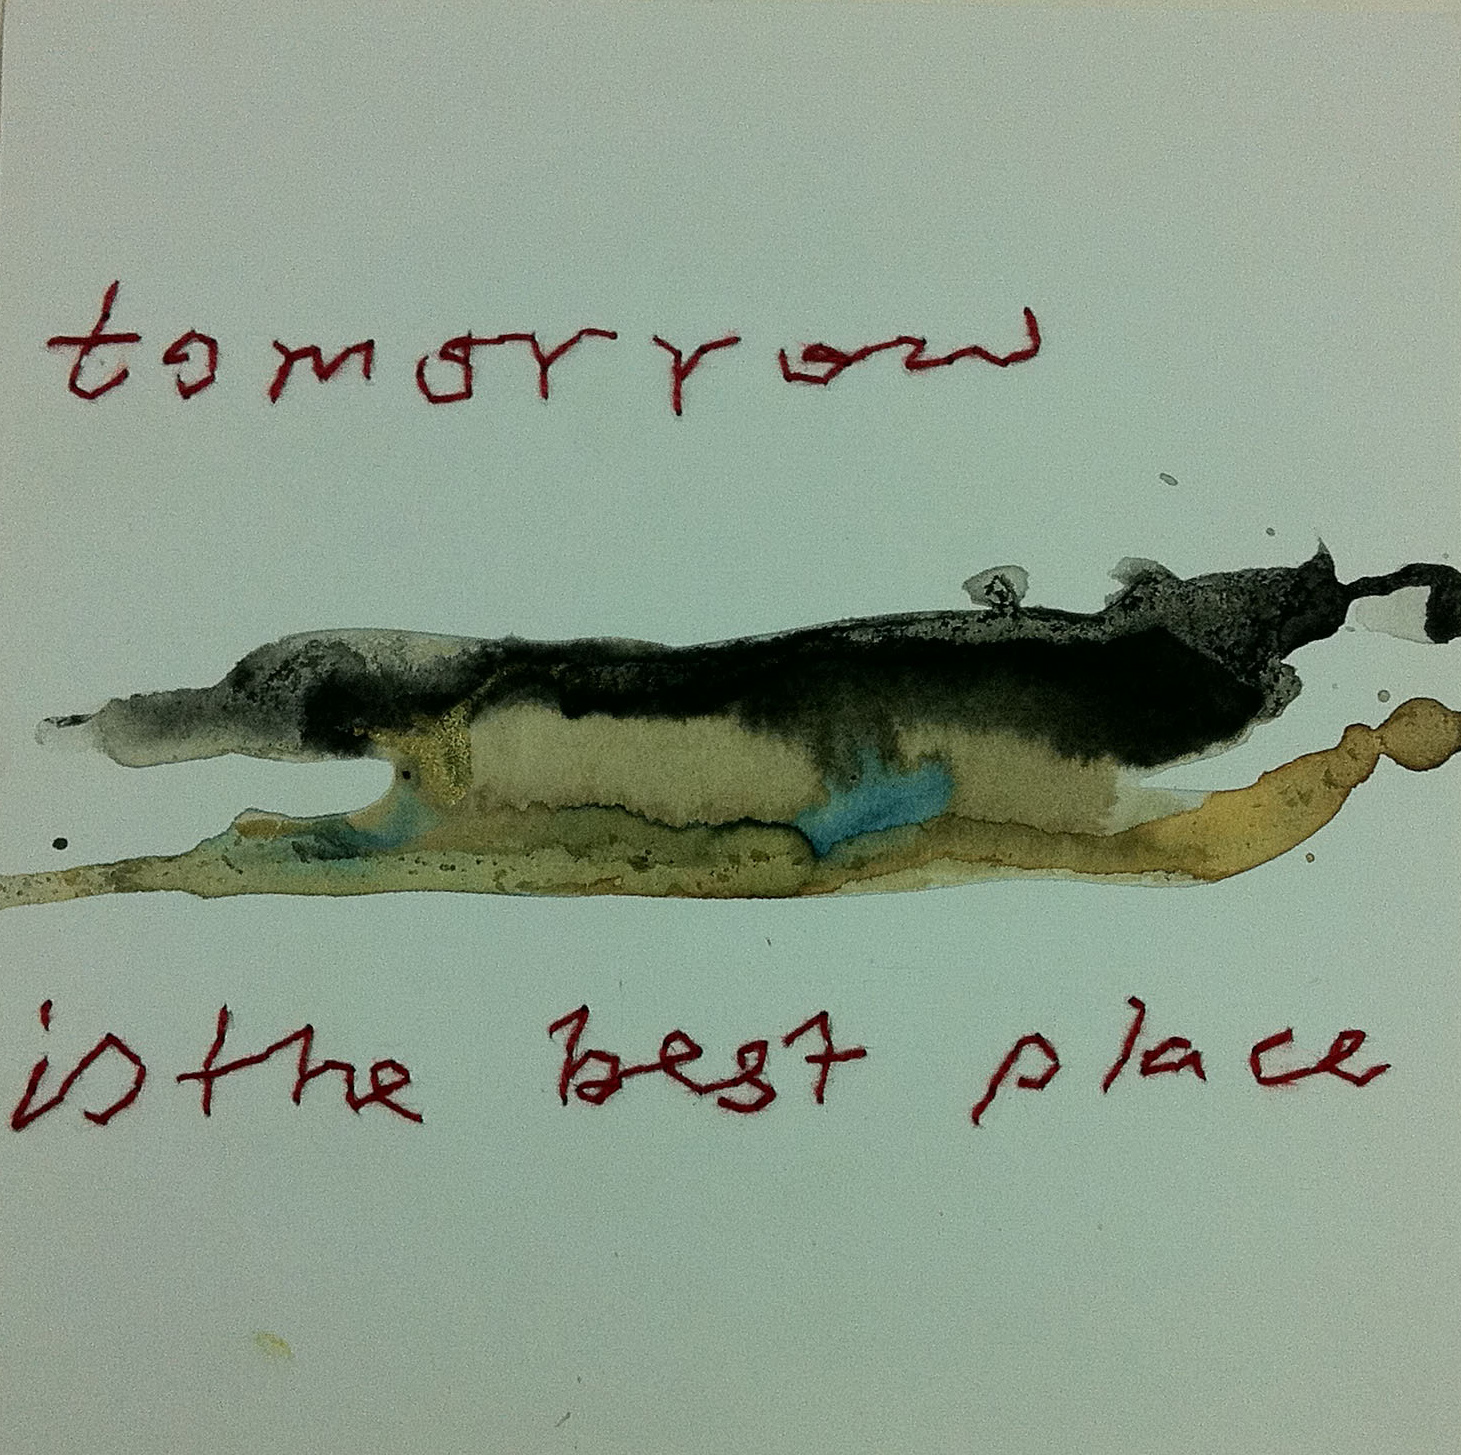 Tomorrow is the best place